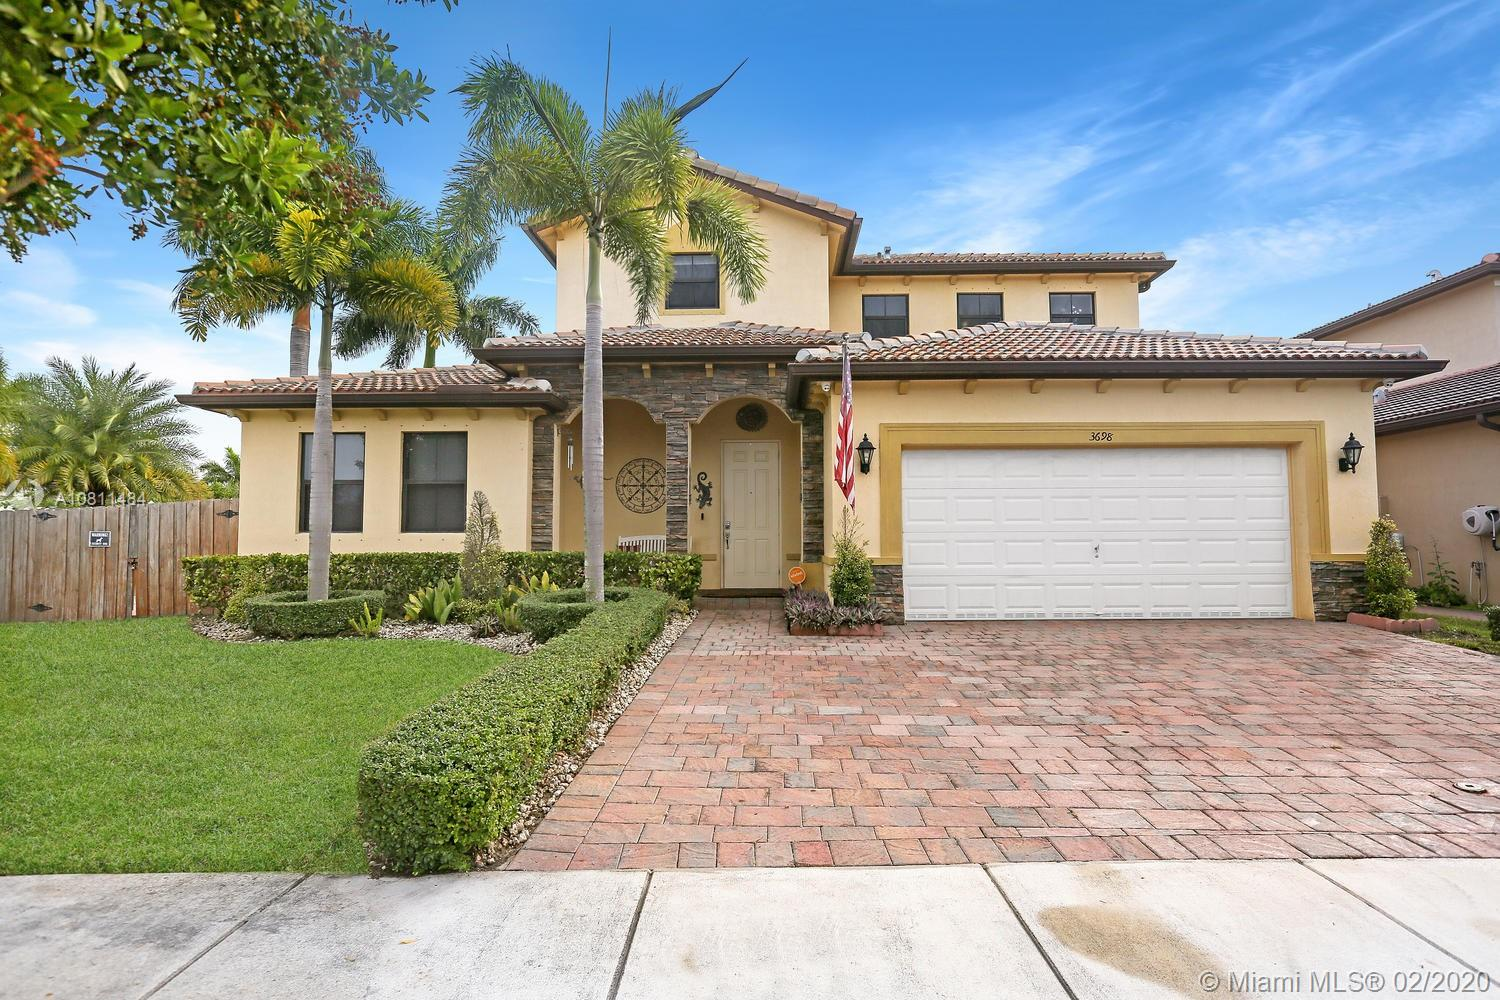 3698 SE 2 Dr, Homestead, FL 33033 - Homestead, FL real estate listing